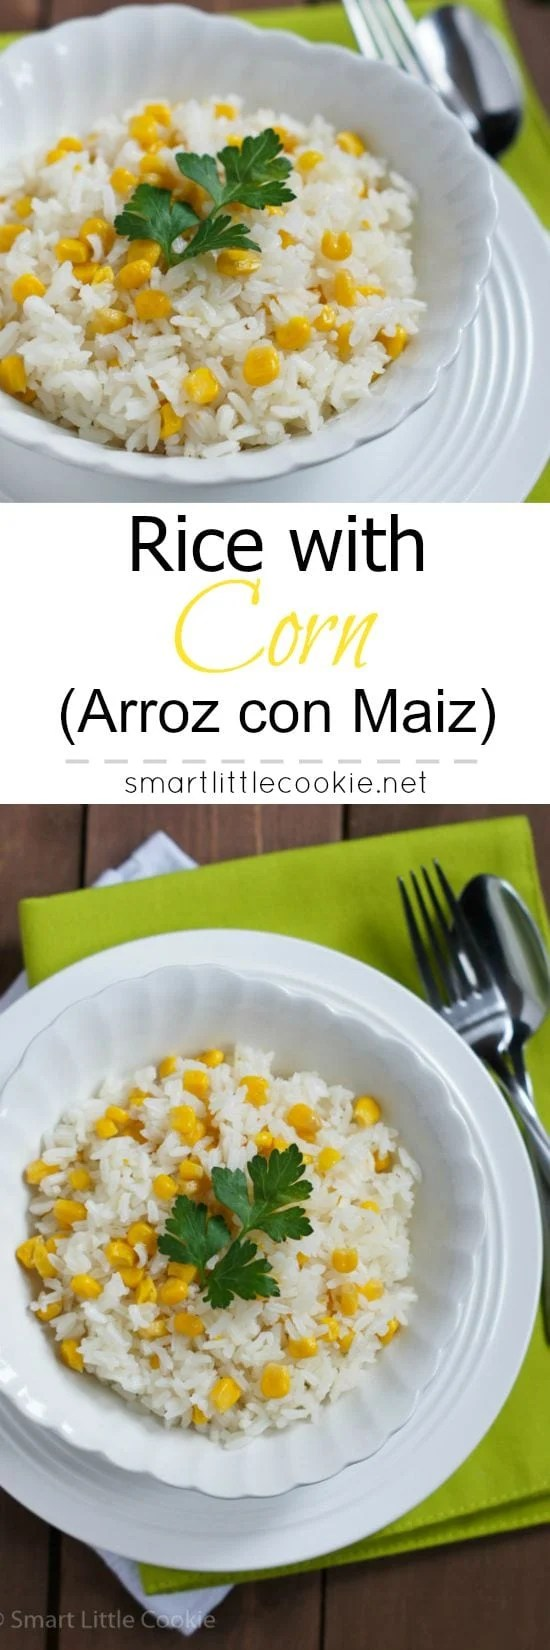 Rice with Corn (Arroz con Maiz) | smartlittlecookie.net